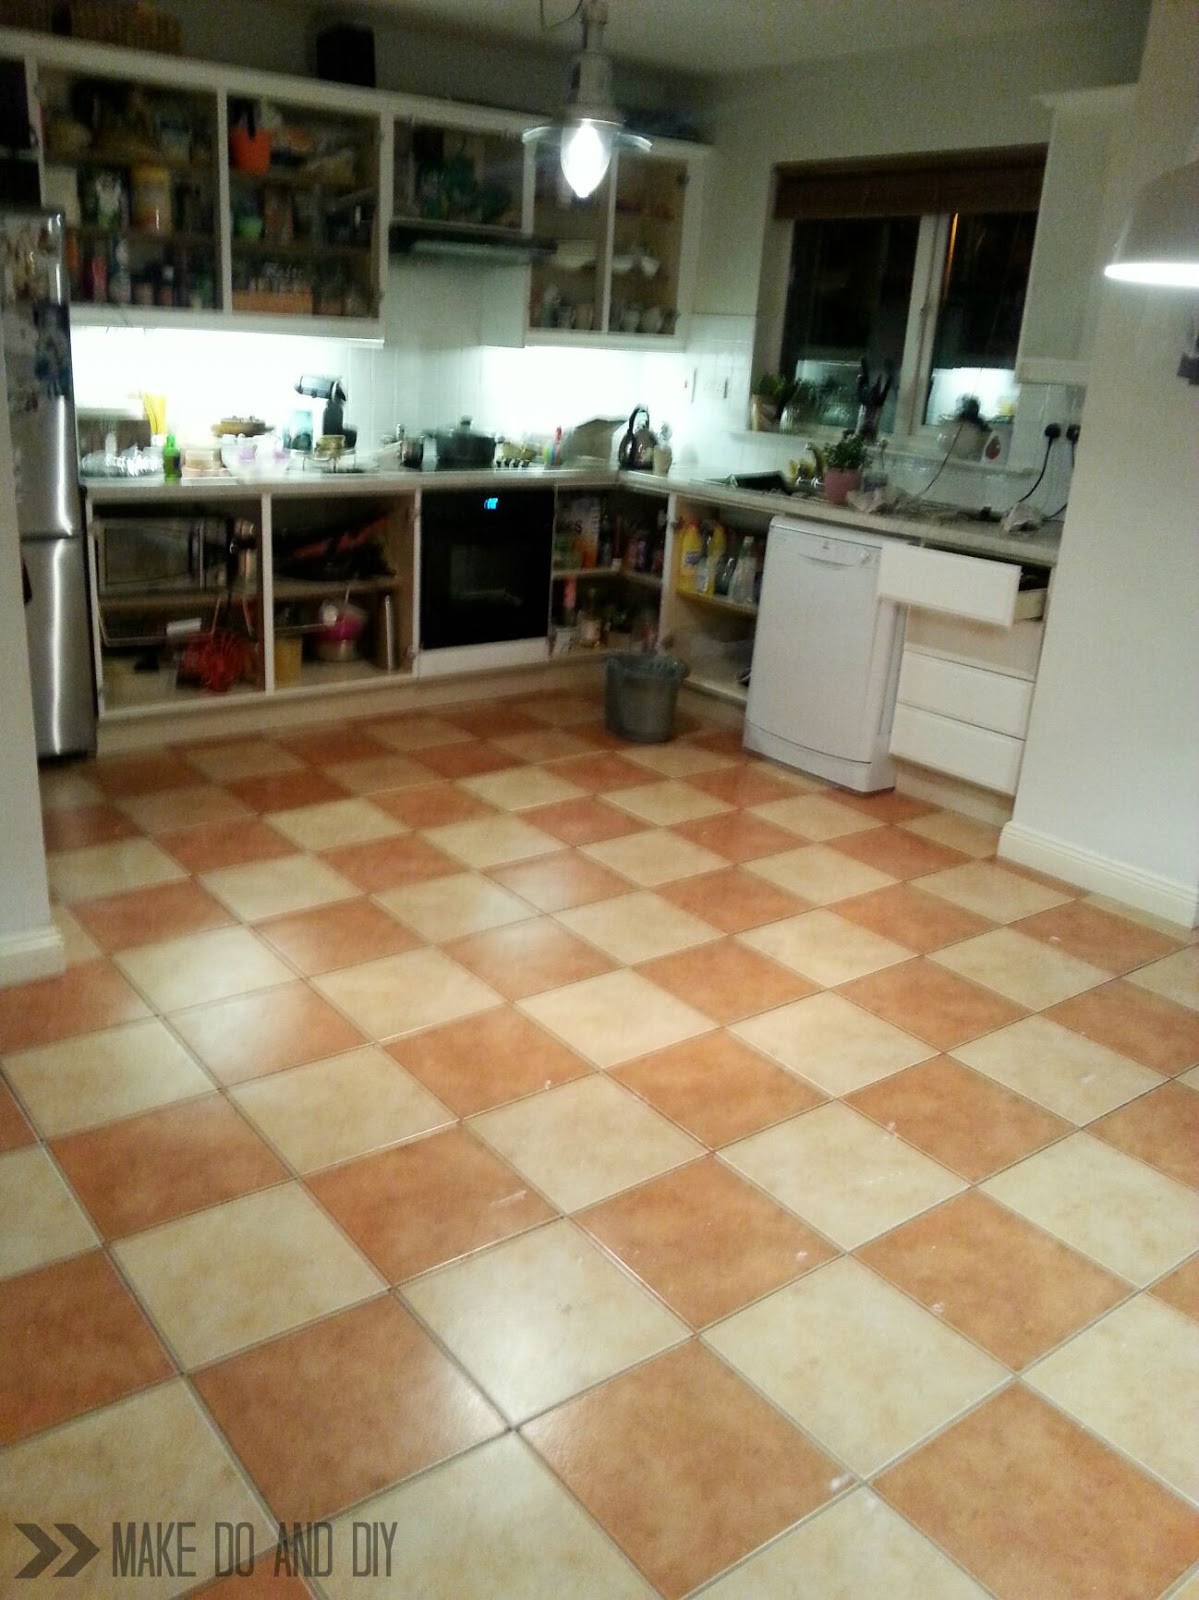 Can ceramic floor tiles be painted